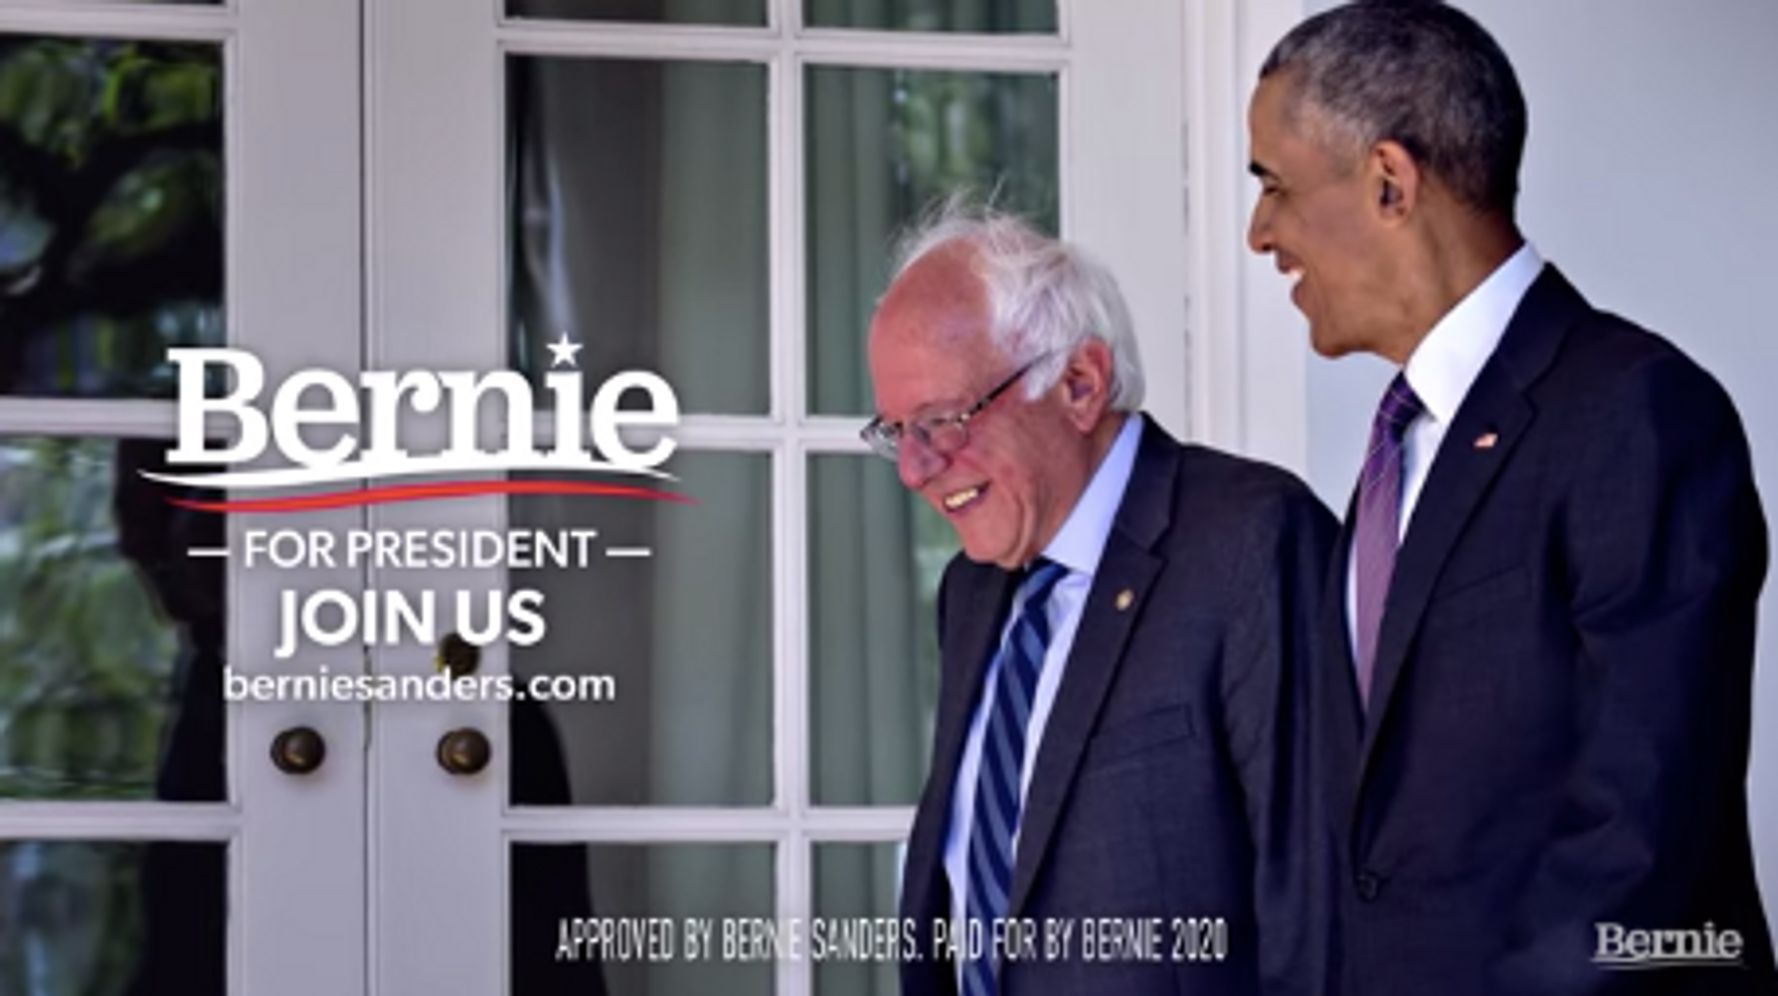 Sanders Highlights Obama's Past Praise For Him In New Ad After Super Tuesday